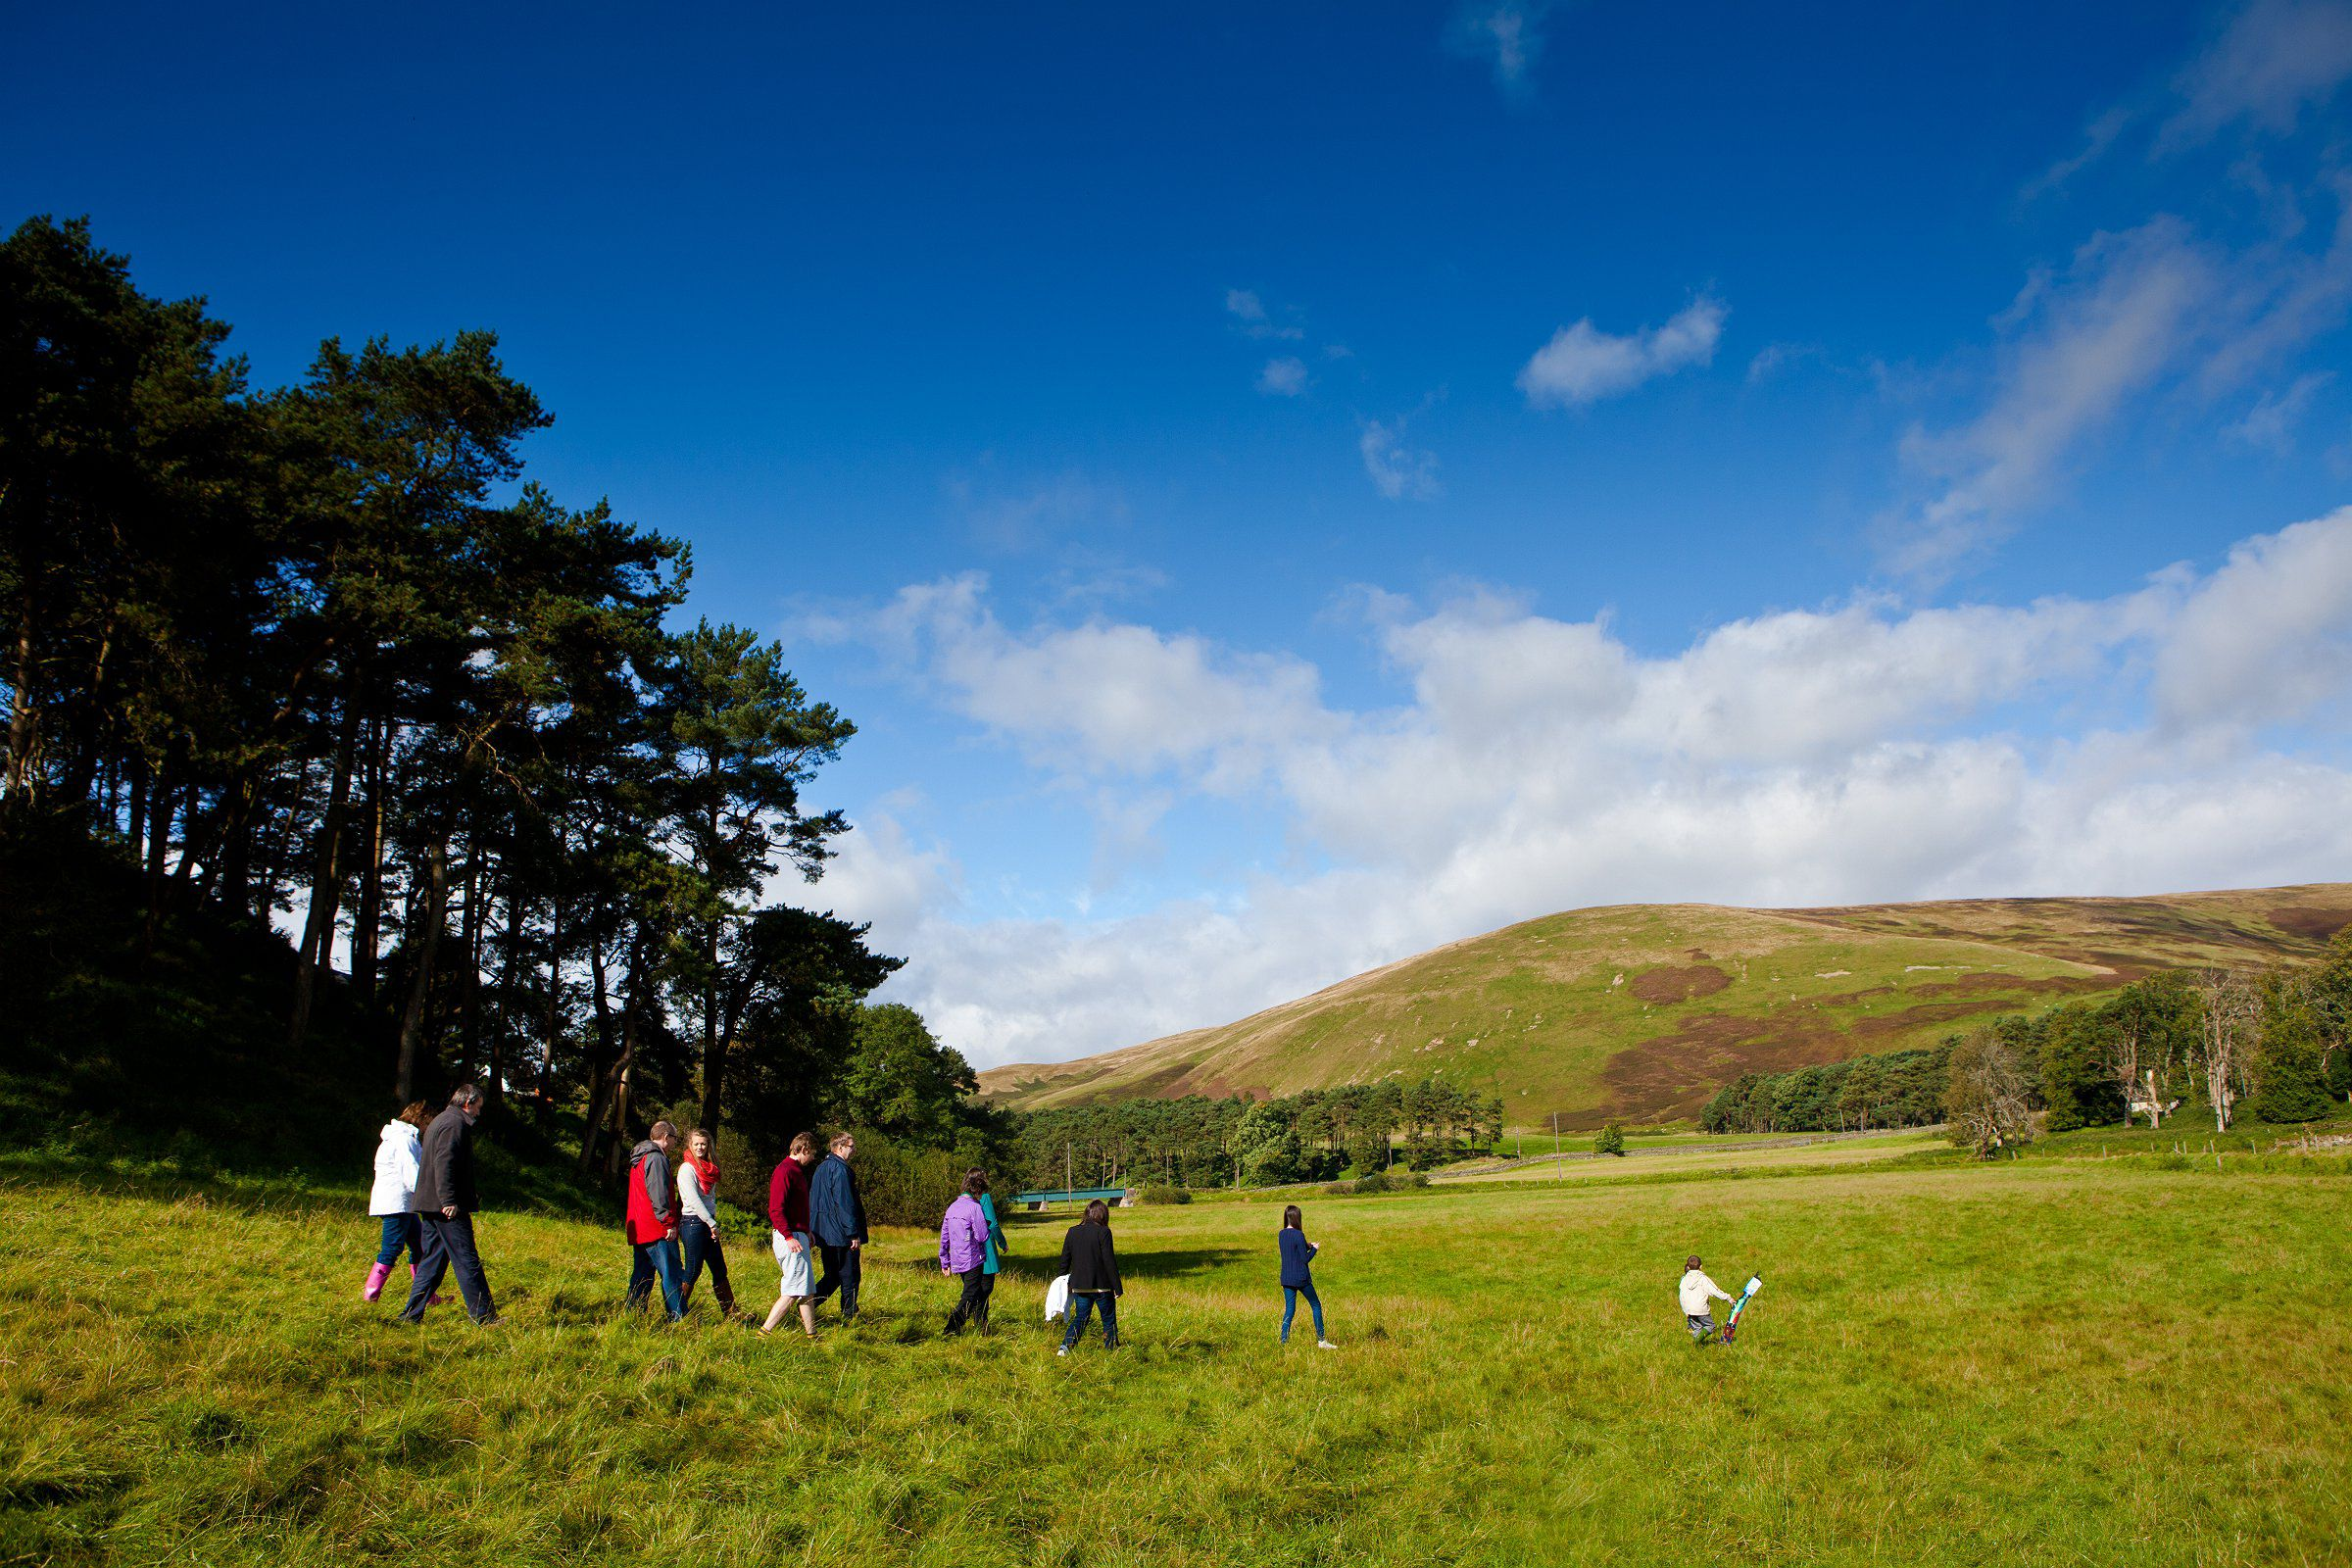 Clyde and Avon Valleys Spring Walks Festival